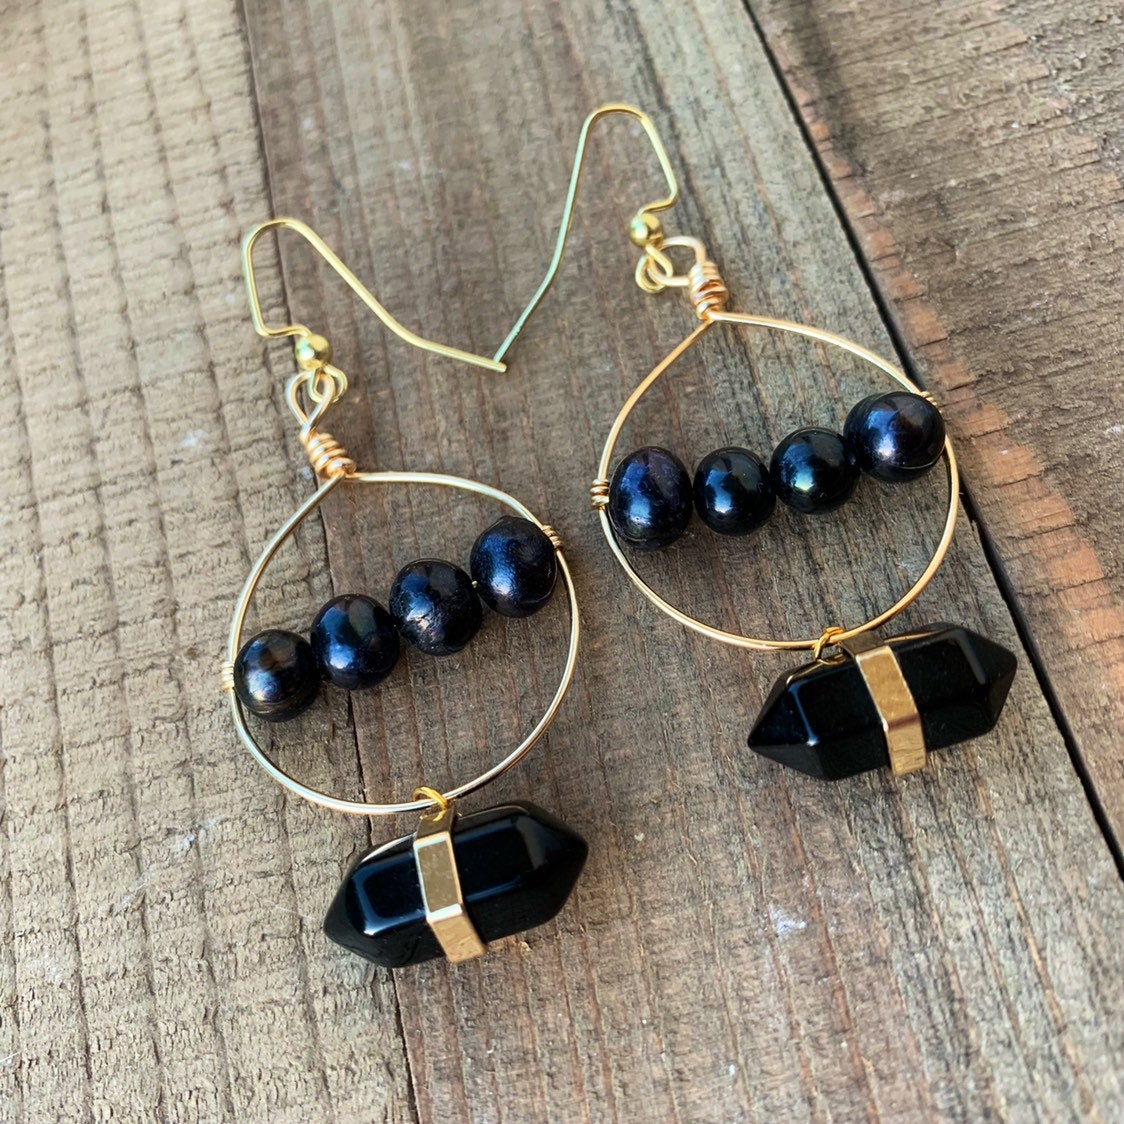 Pearl Hoop Earrings, Freshwater Pearl Earrings, Potato Pearl Earrings, 14k Gold Hoop Earrings, Black Pearl Earrings, Bohemian Hoop Earrings,